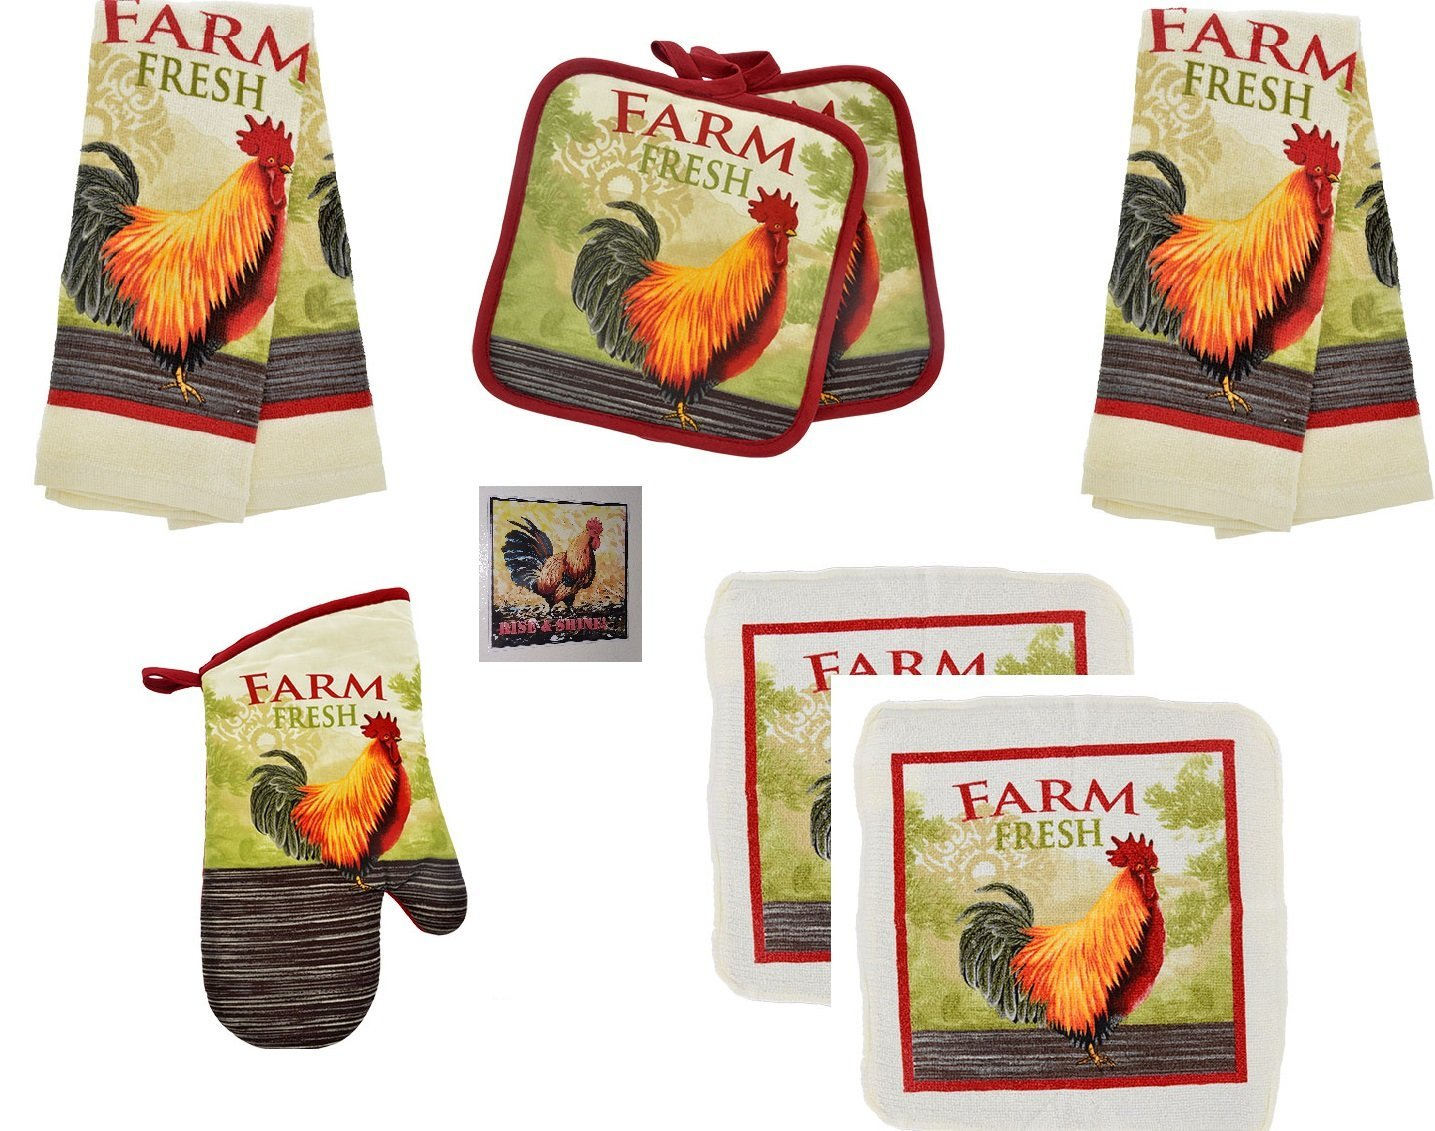 Home Collection Rooster Kitchen Towels Bundle - Towels, Oven Mitt, Dish Cloths, Pot Holders and a Matching Magnet